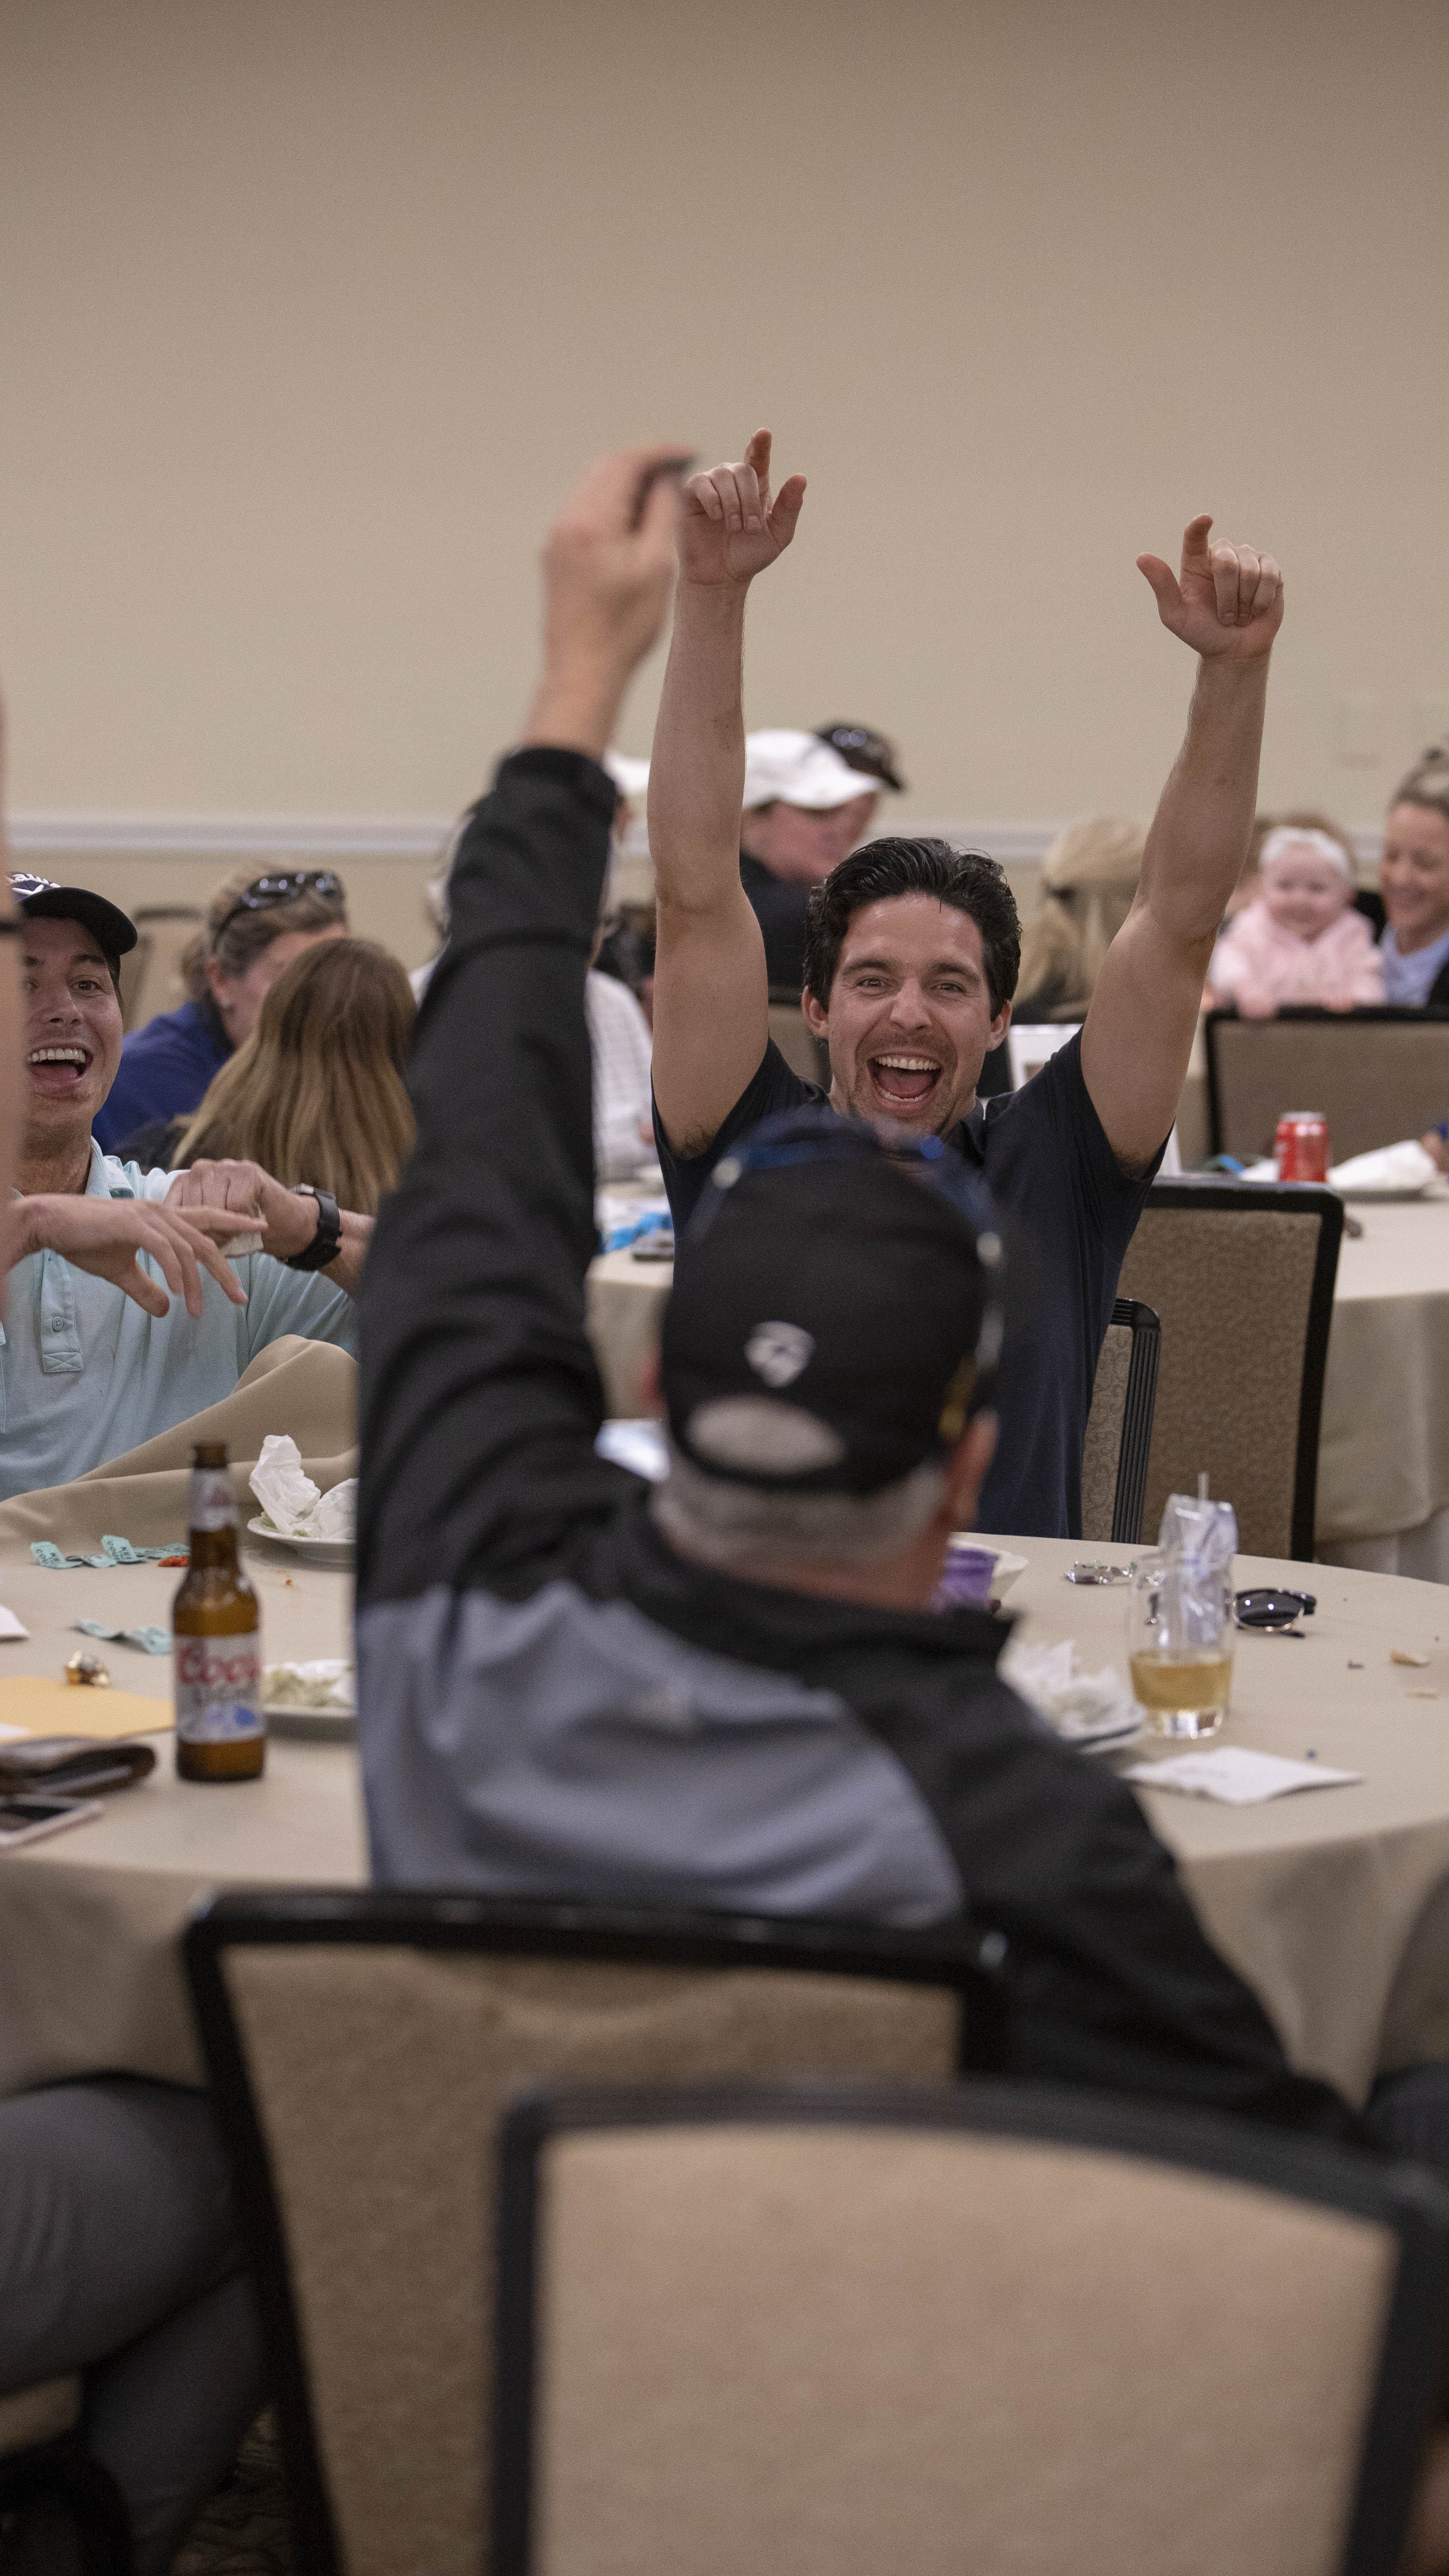 Alabaster Jar Project 501(c)(3) 3rd Annual Golf Tournament Fundraiser gallery image #17